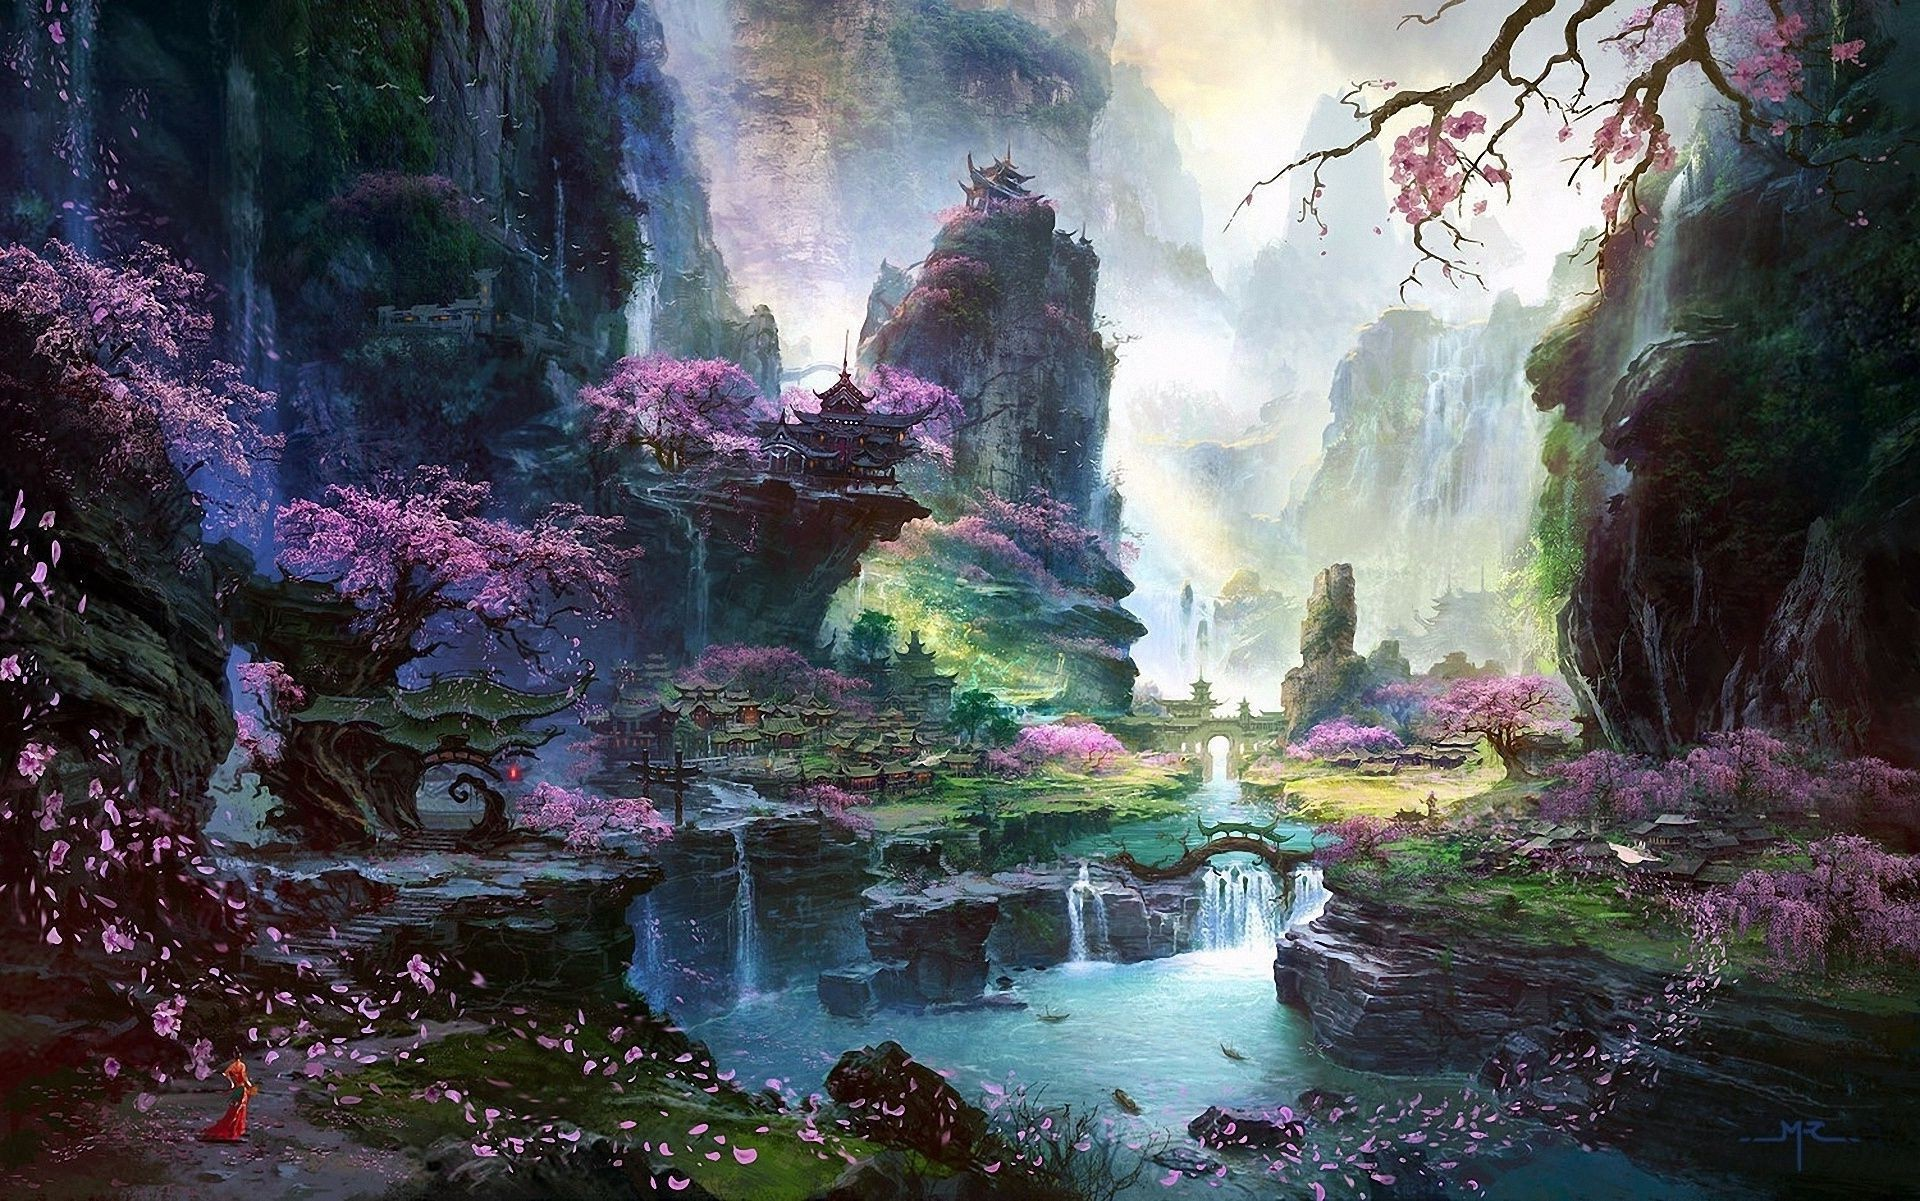 Waterfall River Landscape Asia Art Sakura Trees Temple Desktop Wallpapers For Free